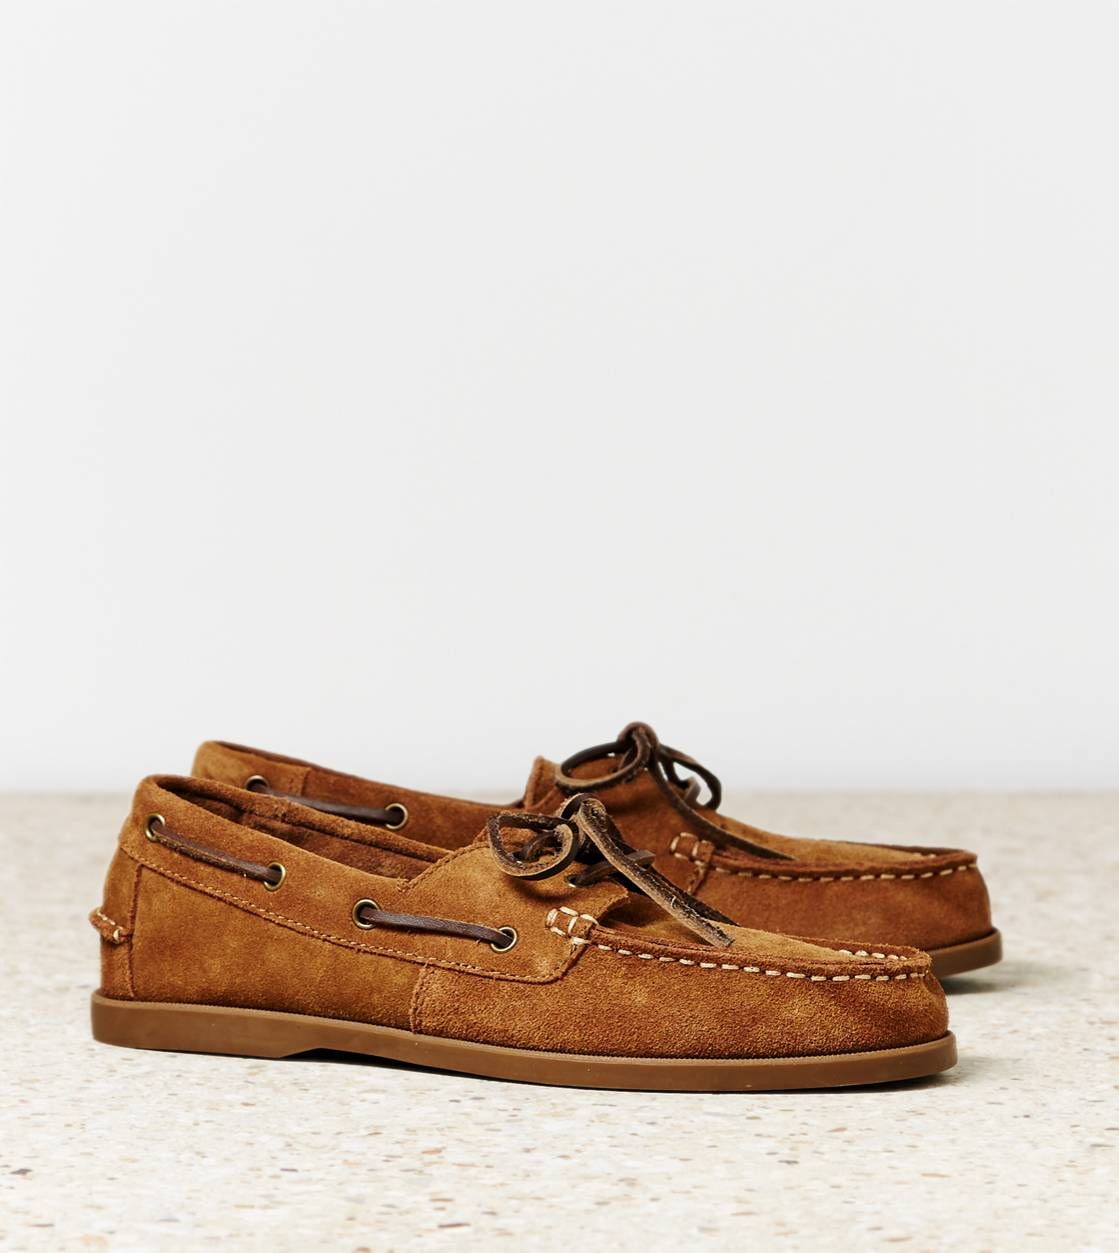 AEO Suede Boat Shoe | Smart Style | Pinterest | Boats, Tans and Shoes